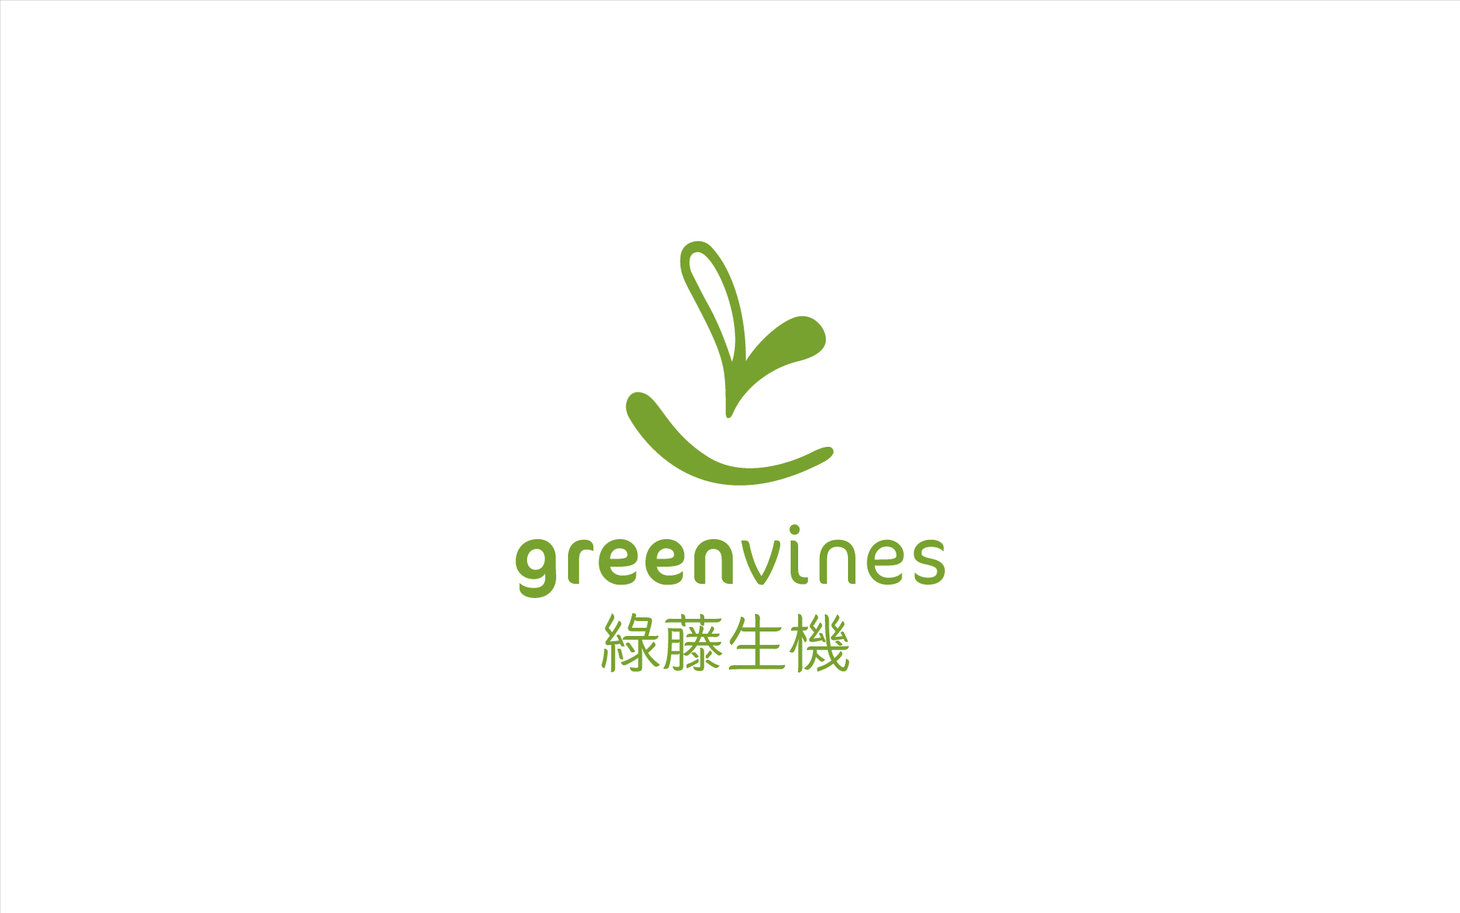 Greenvines_Logo_01.jpg